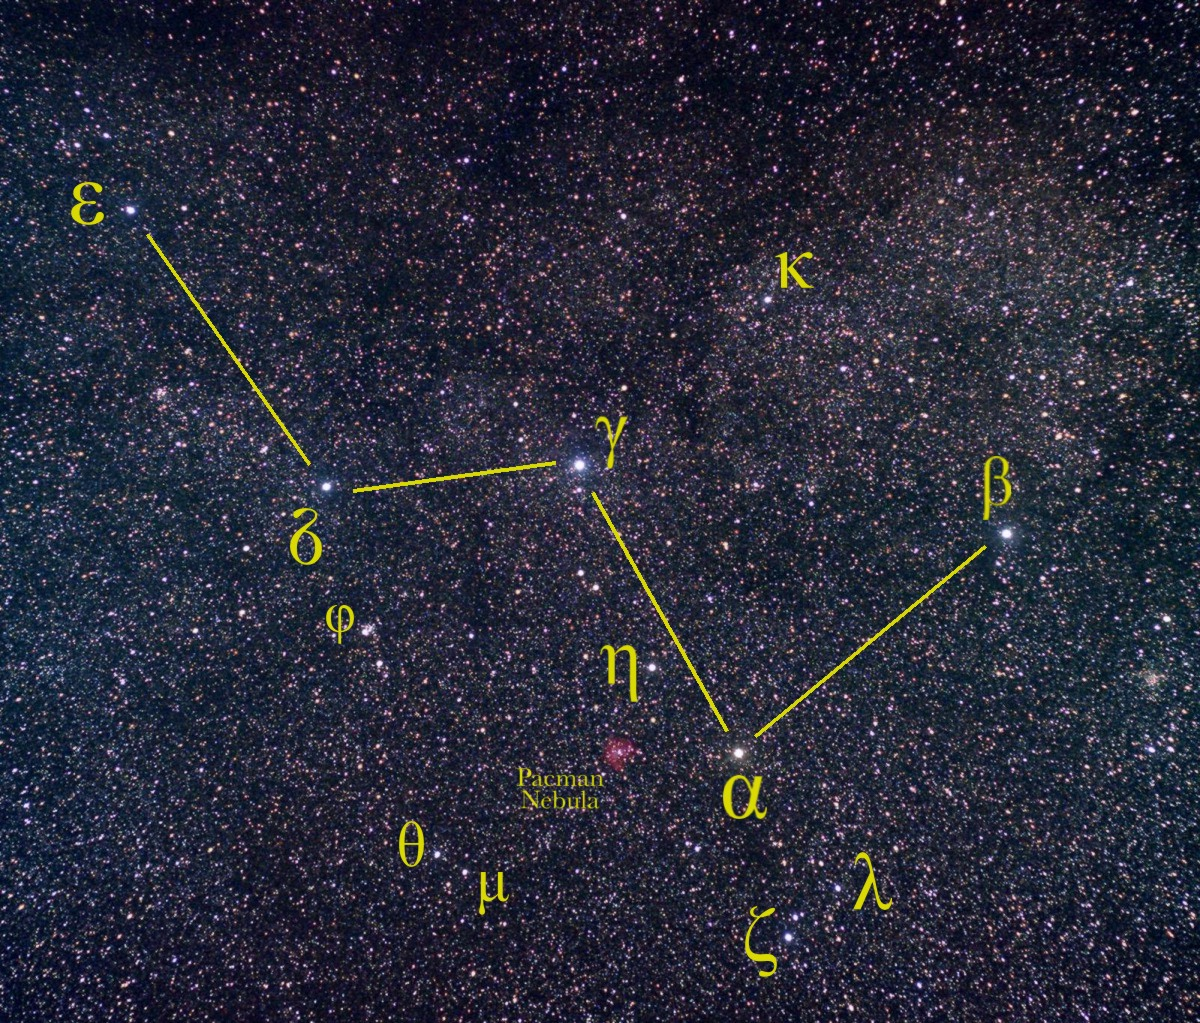 Cassiopeia is shown with lines connecting the stars.